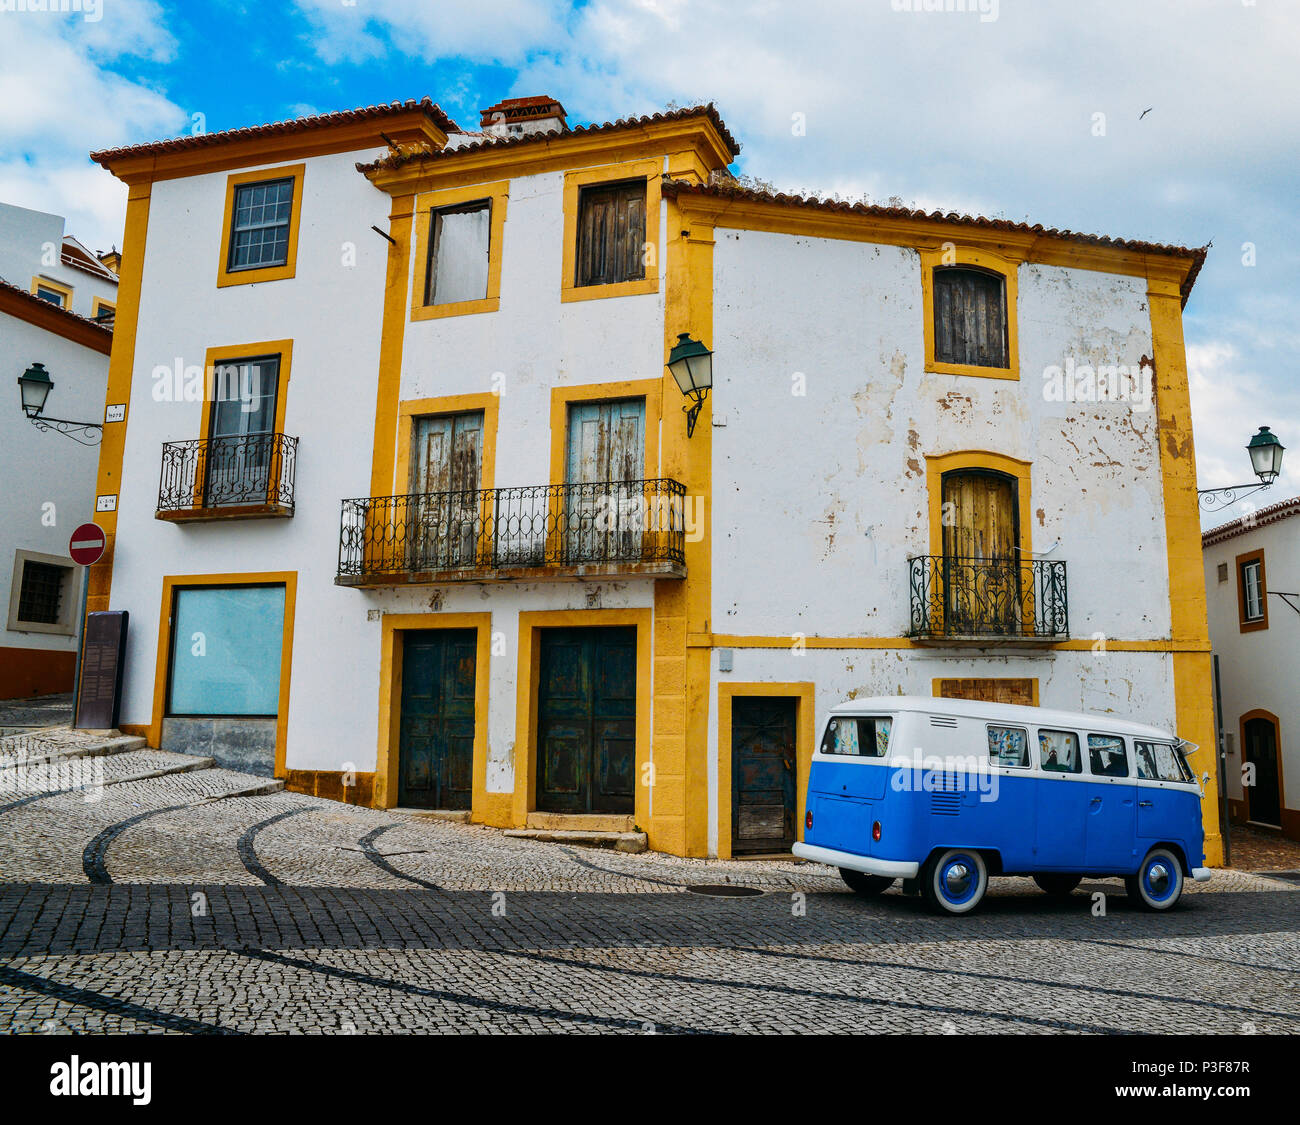 traditional-residential-facades-in-constancia-portugal-with-vw-van-P3F87R.jpg